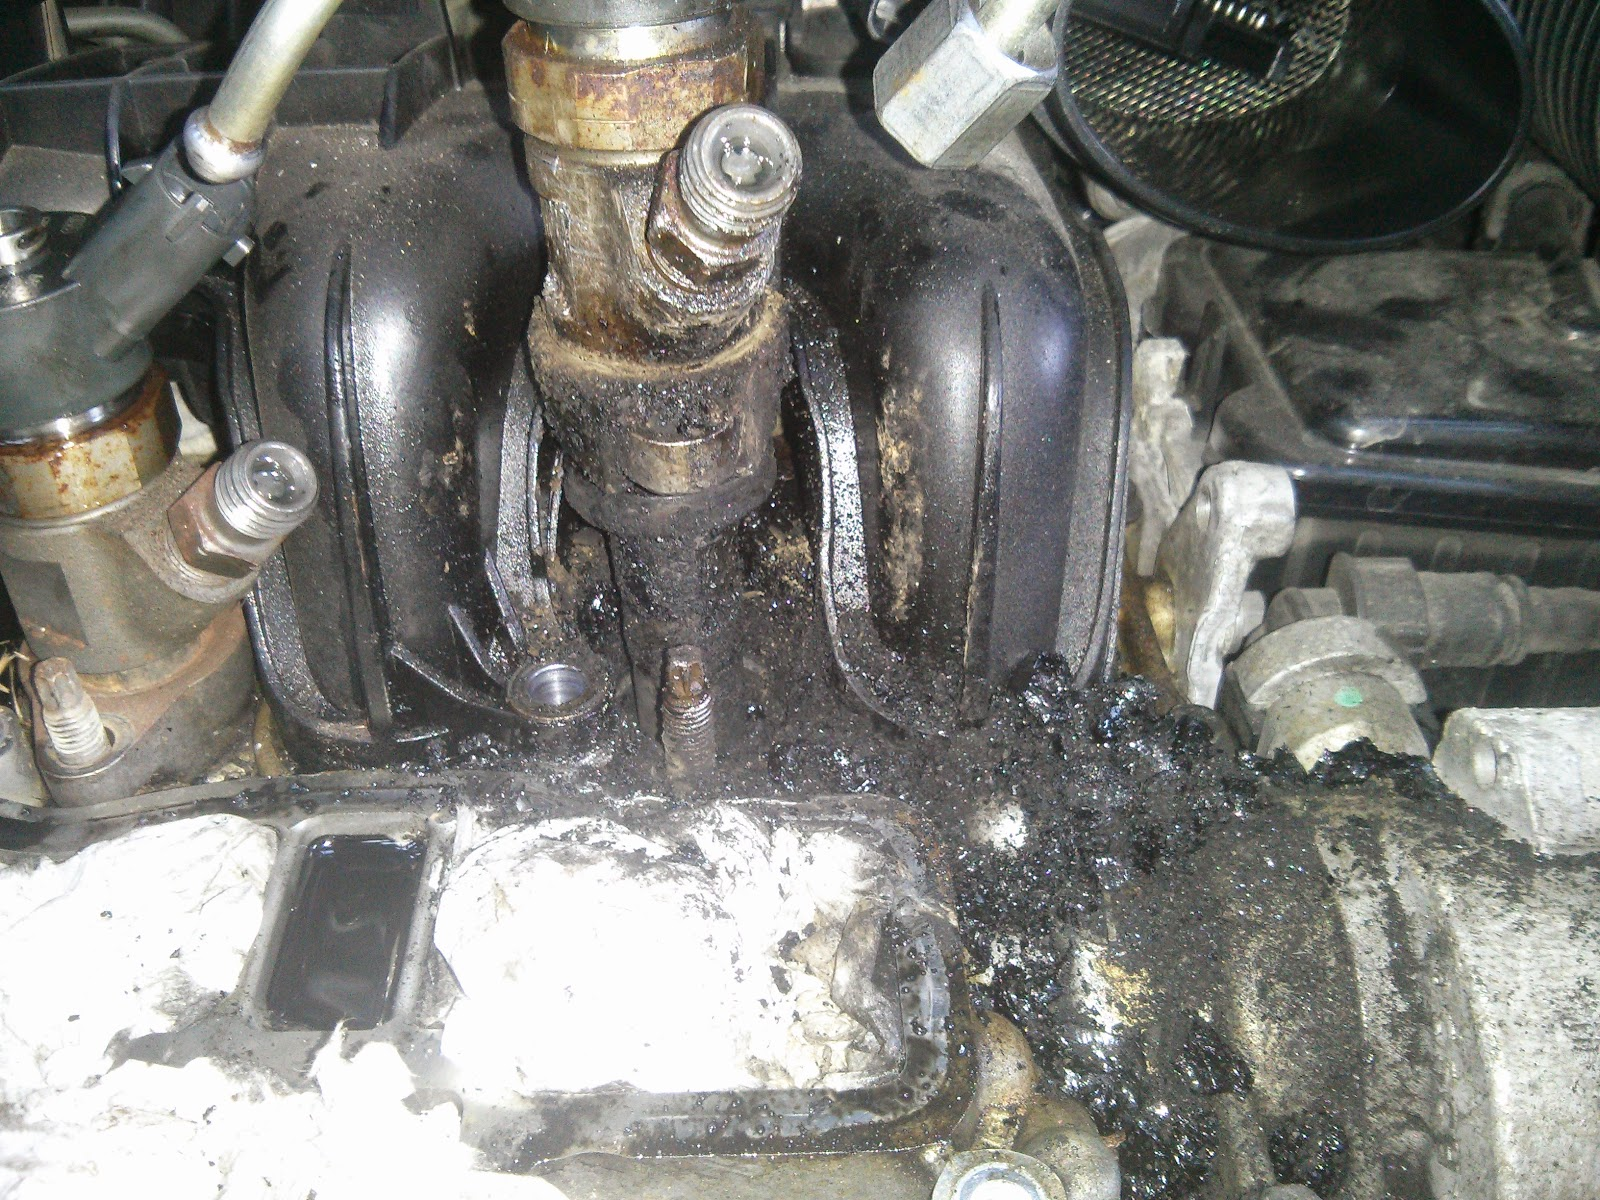 Workshop Repair 16 Tdci Turbo Failure Heres The Real Cause 2014 Ford Focus Crankshaft Carbon Build Up